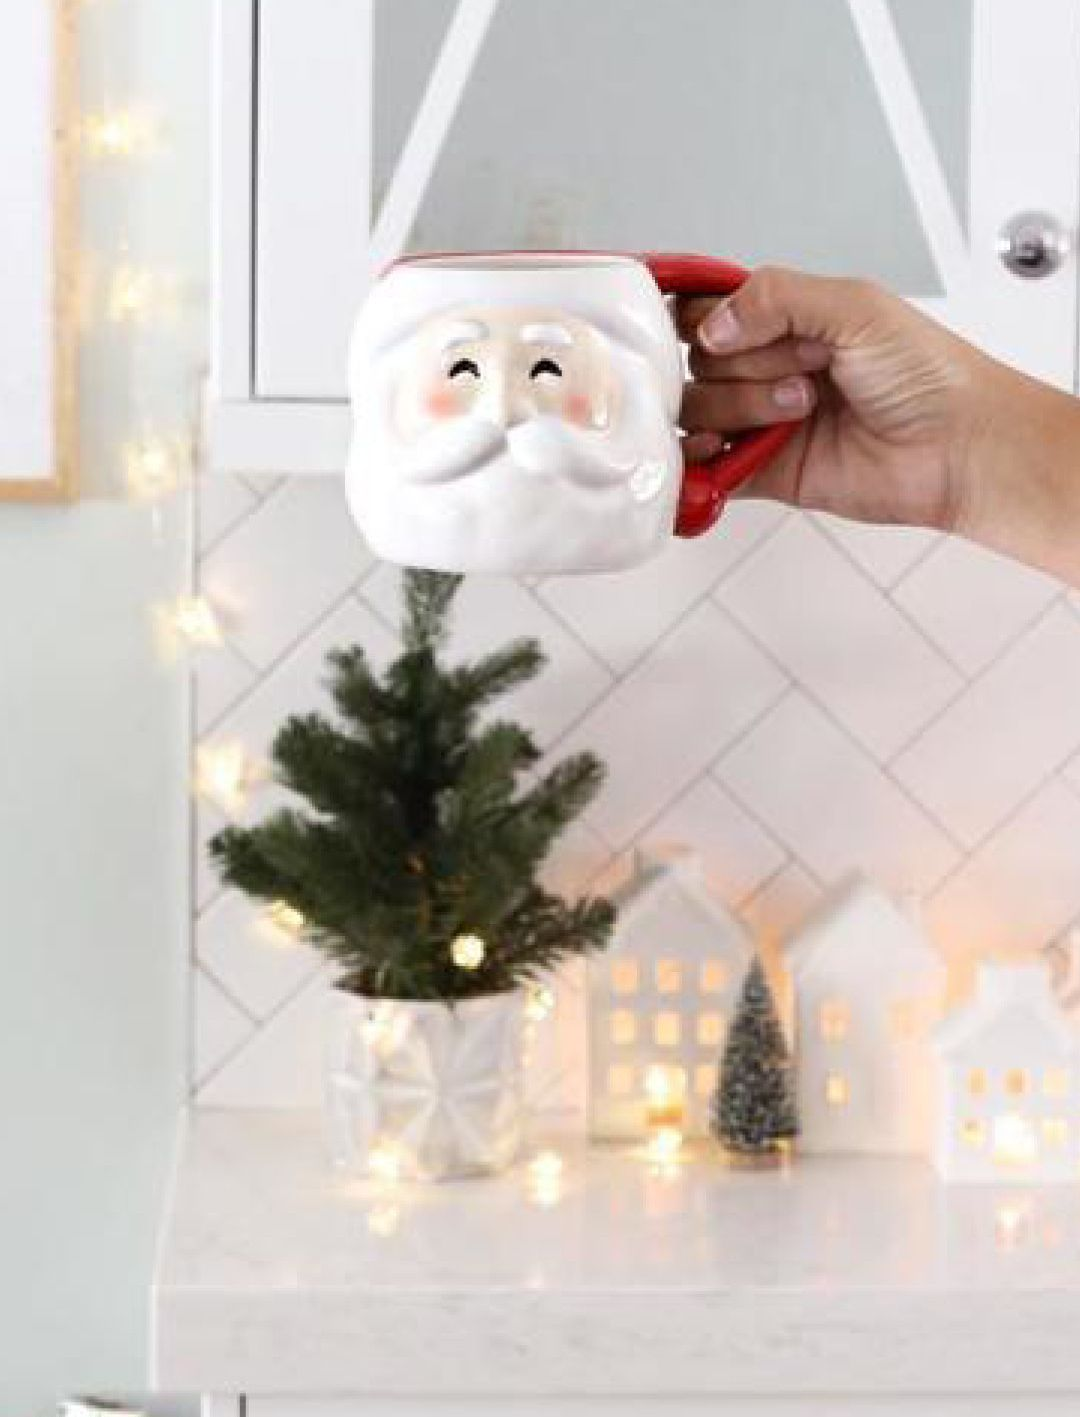 Have a cup of cheer with seasonal Santa mugs. F